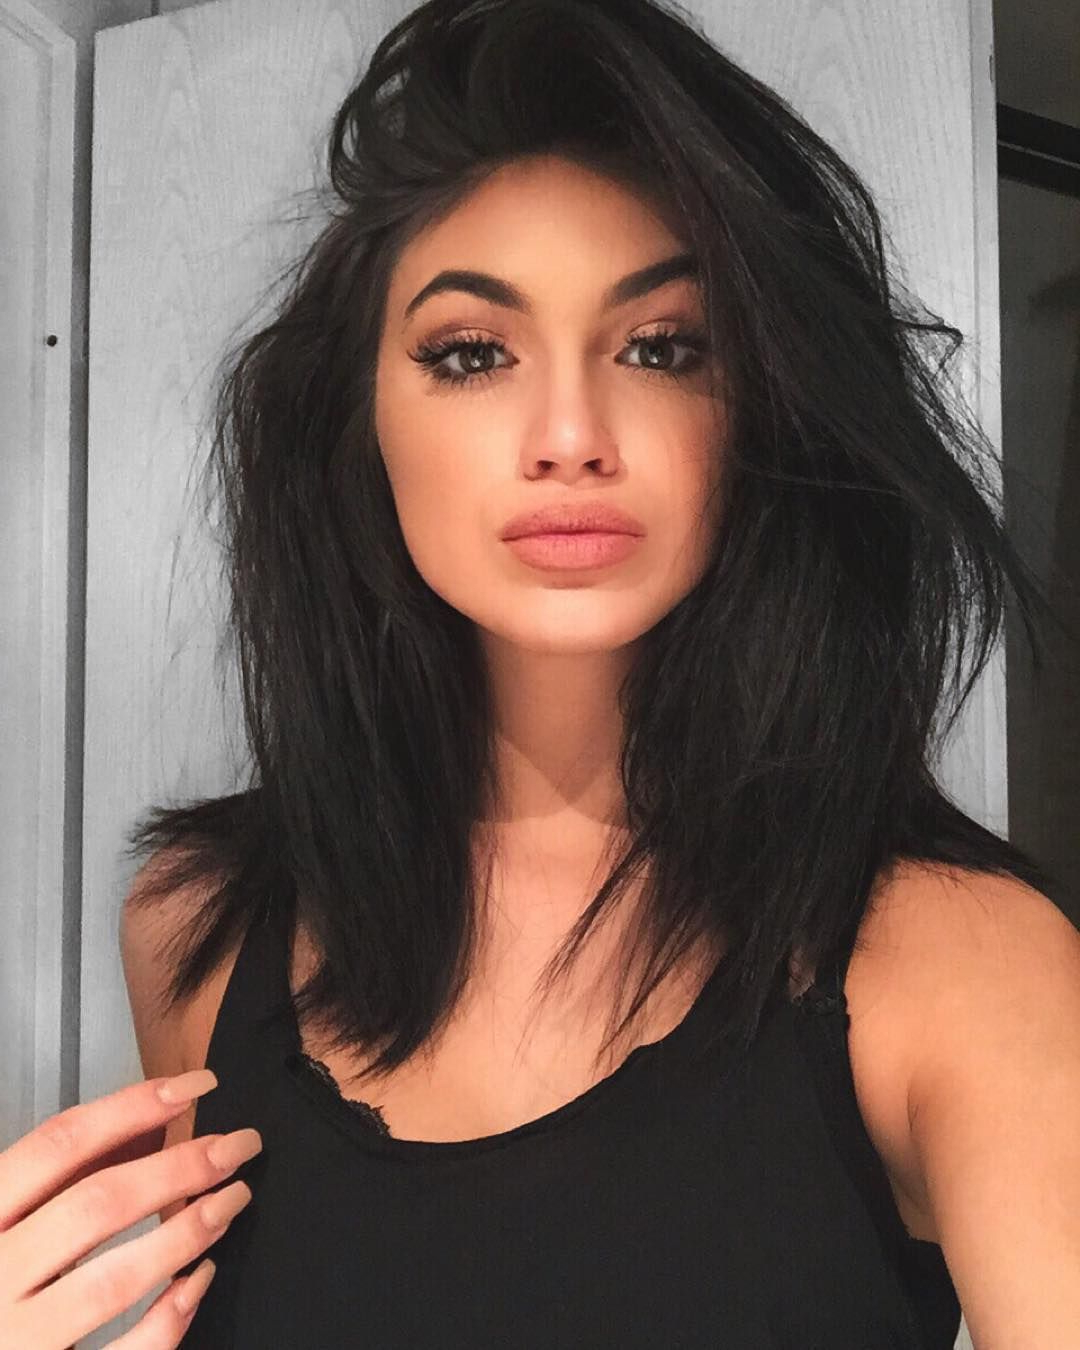 Postginizzle On Instagram | Vibbi | Hairstyle Ideas In 2018 With Regard To Kylie Jenner Short Haircuts (View 7 of 25)